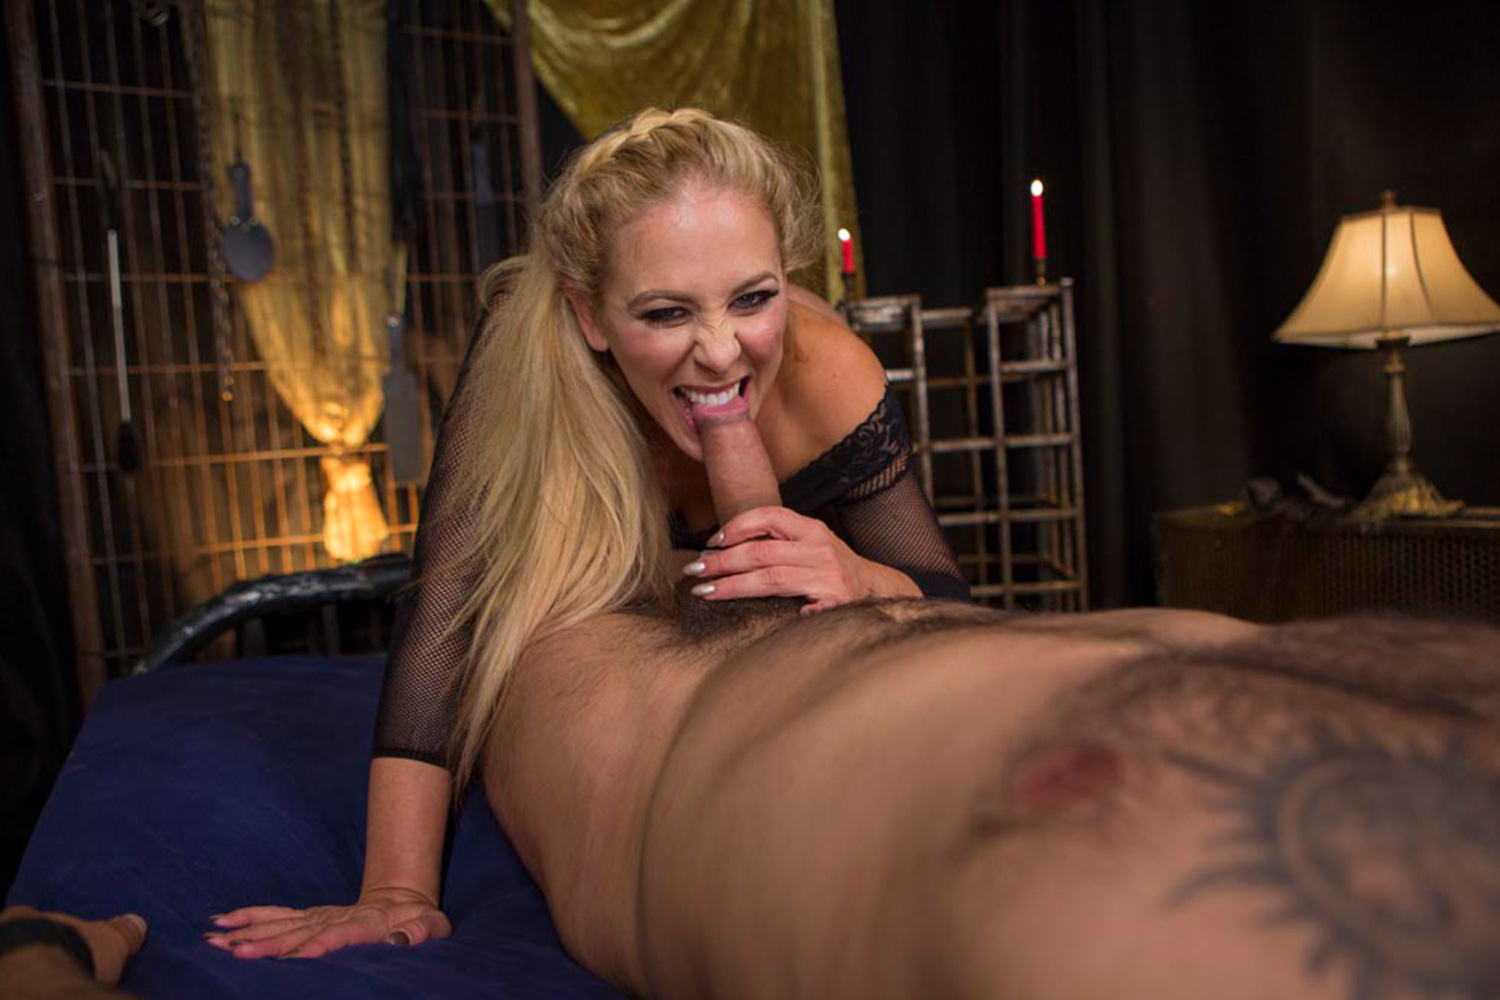 Property of Cherie DeVille Part 1 - Tease and Denial VR Porn Video